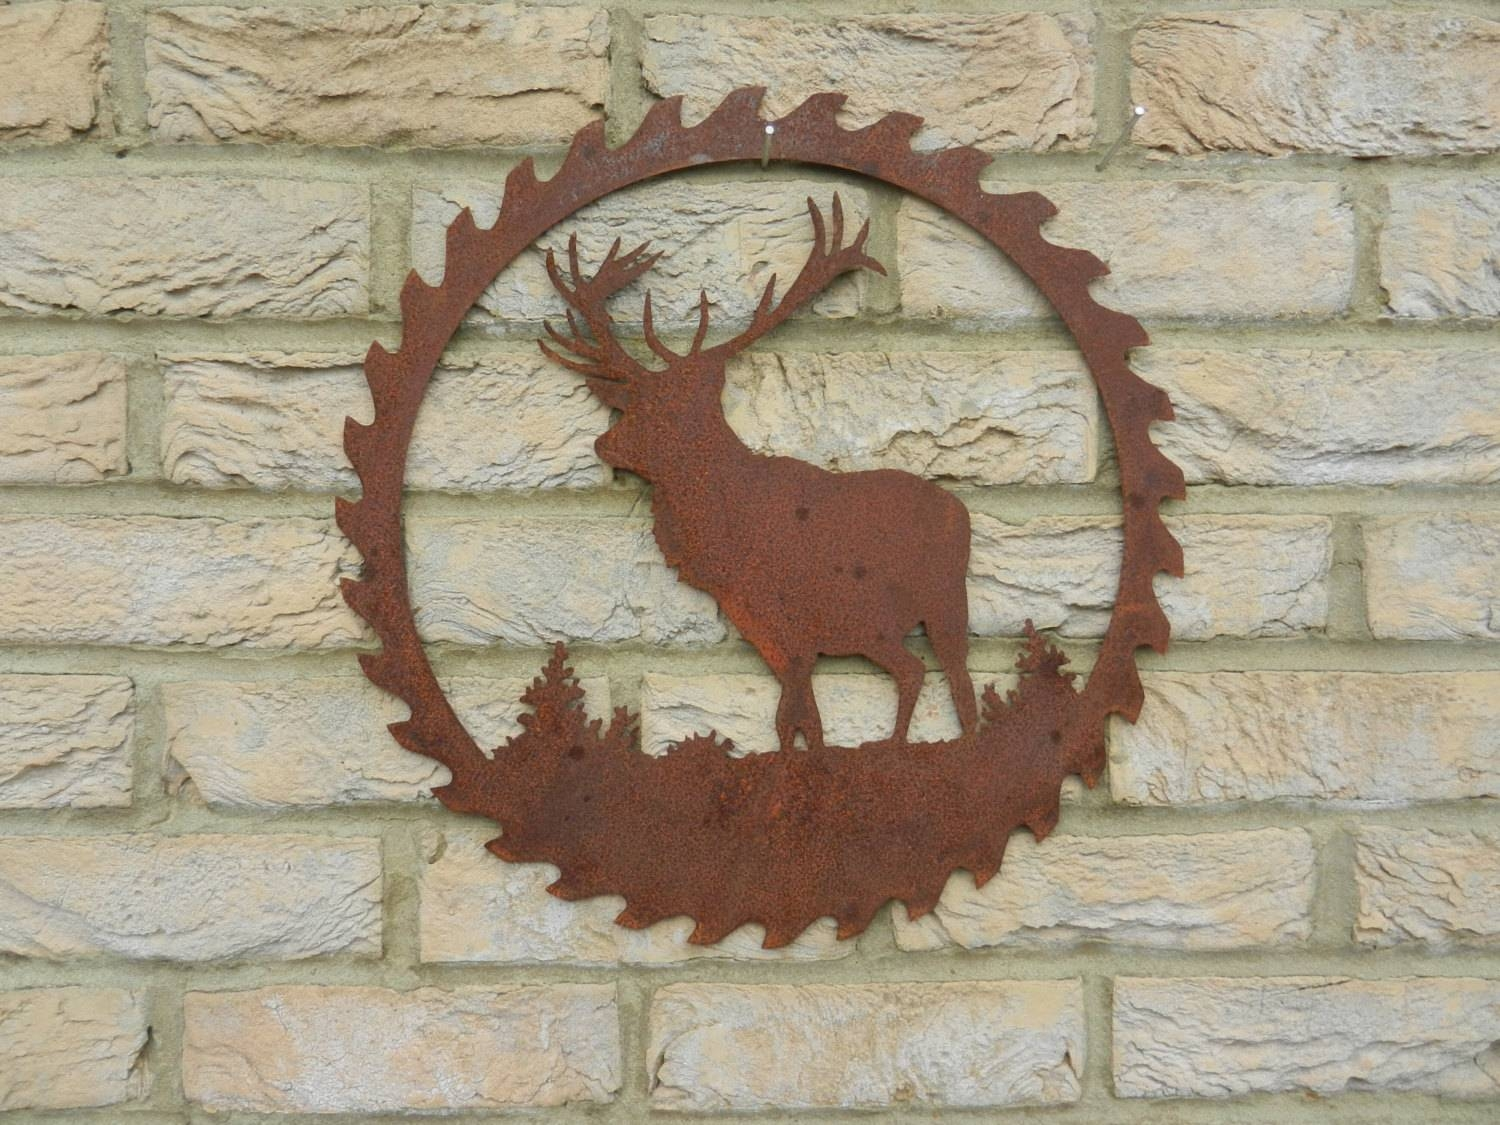 Stag Wall Art / Rusty Metal Garden Decoration / Stag Gift / With Most Current Stag Wall Art (View 5 of 20)